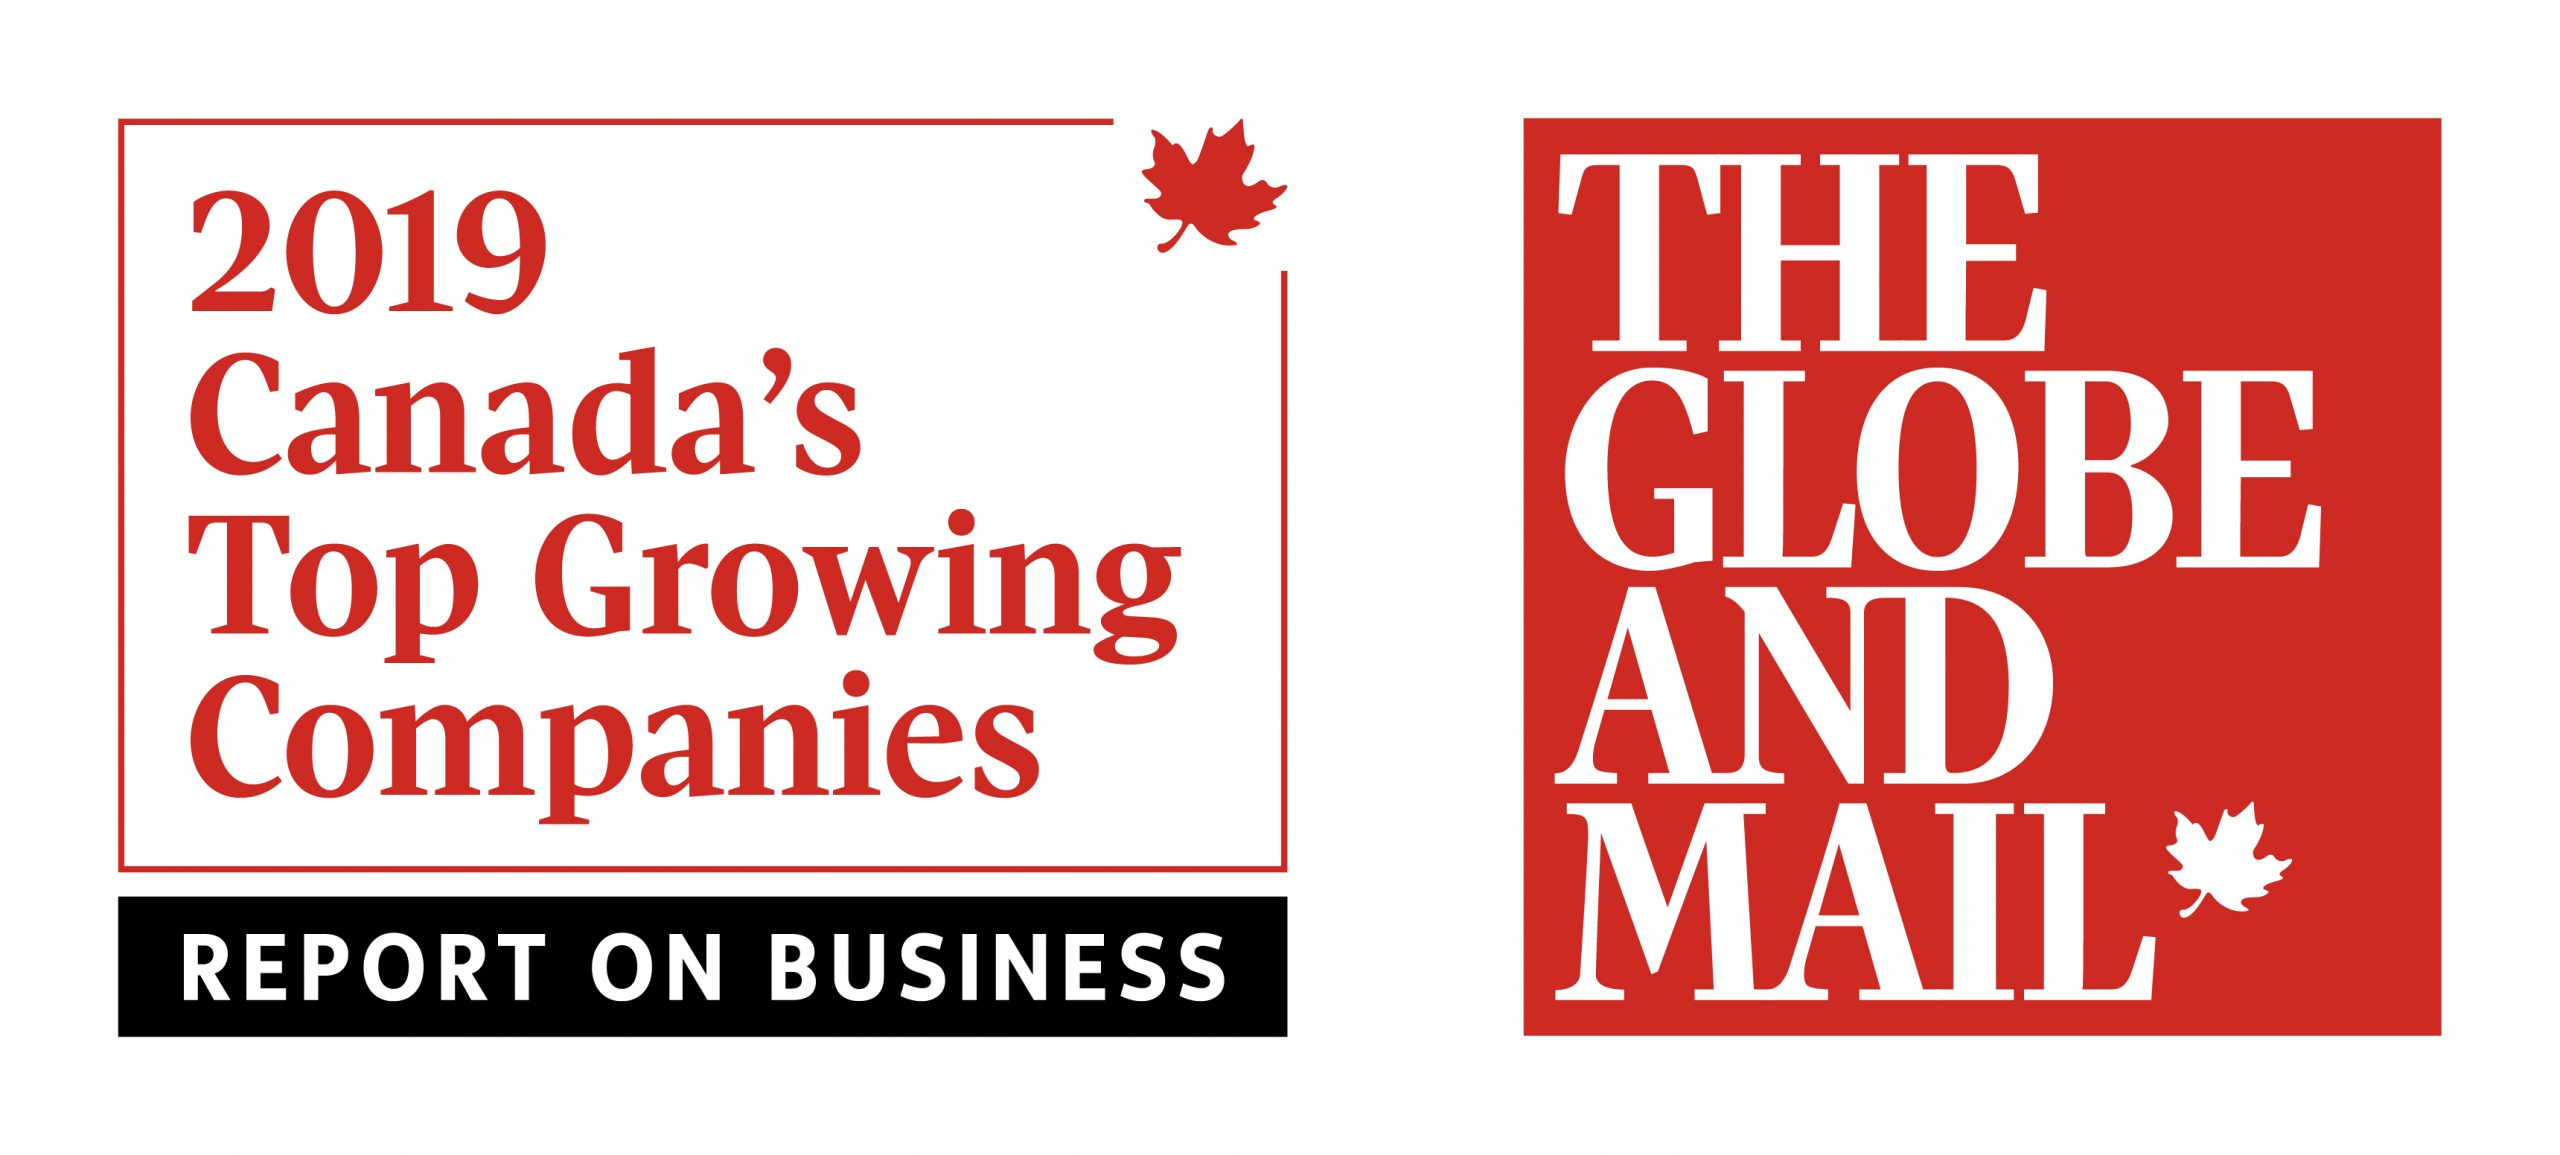 2019 CTGC with The Globe and Mail RGB scaled